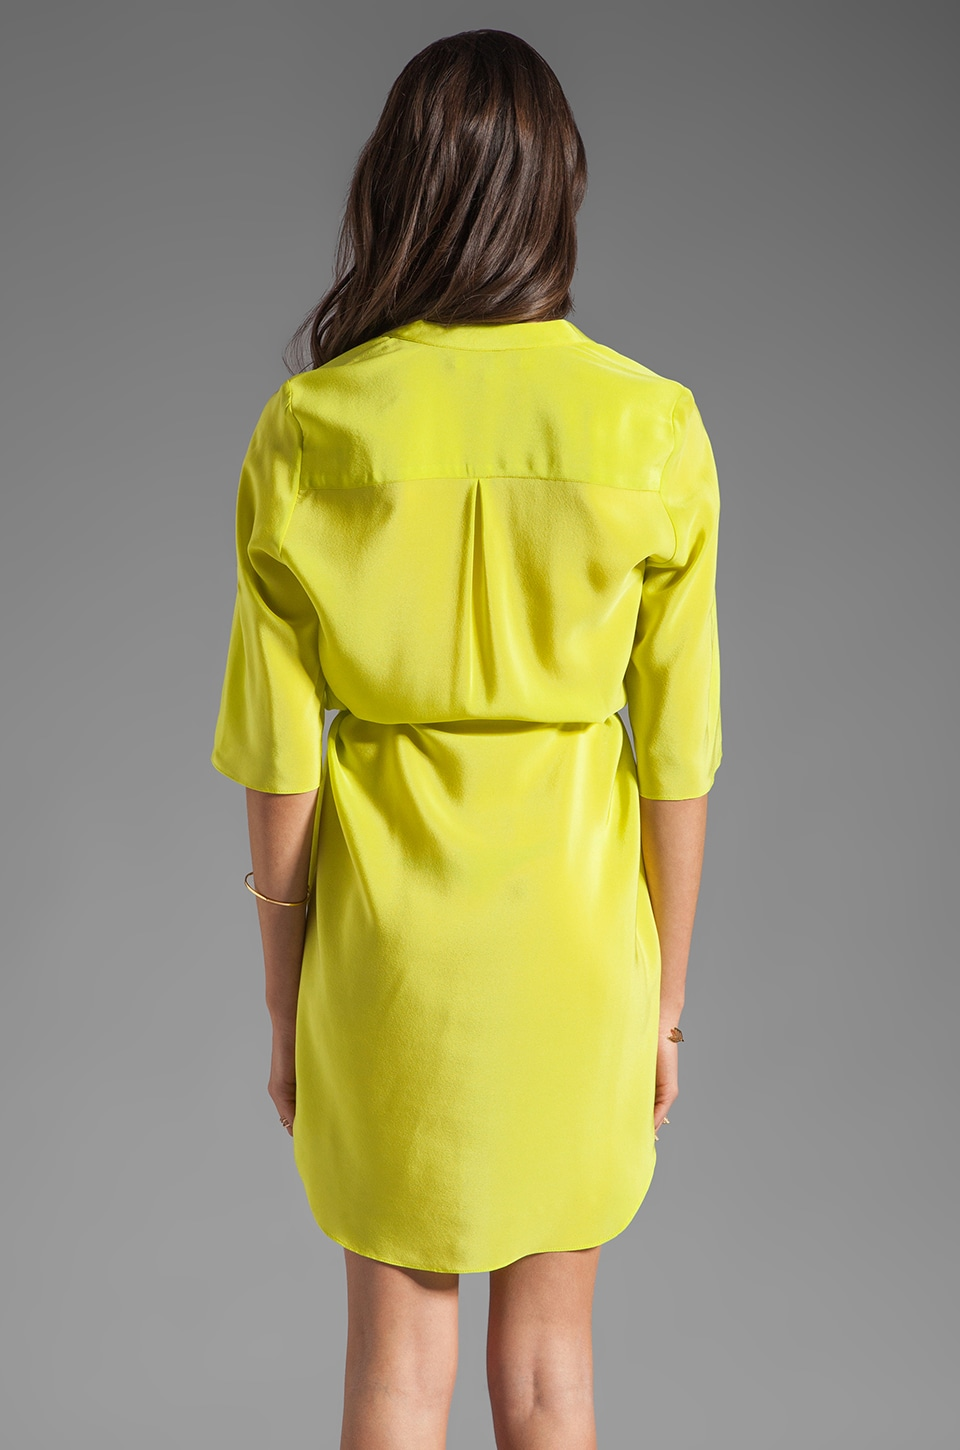 Amanda Uprichard Staci Dress in Lime